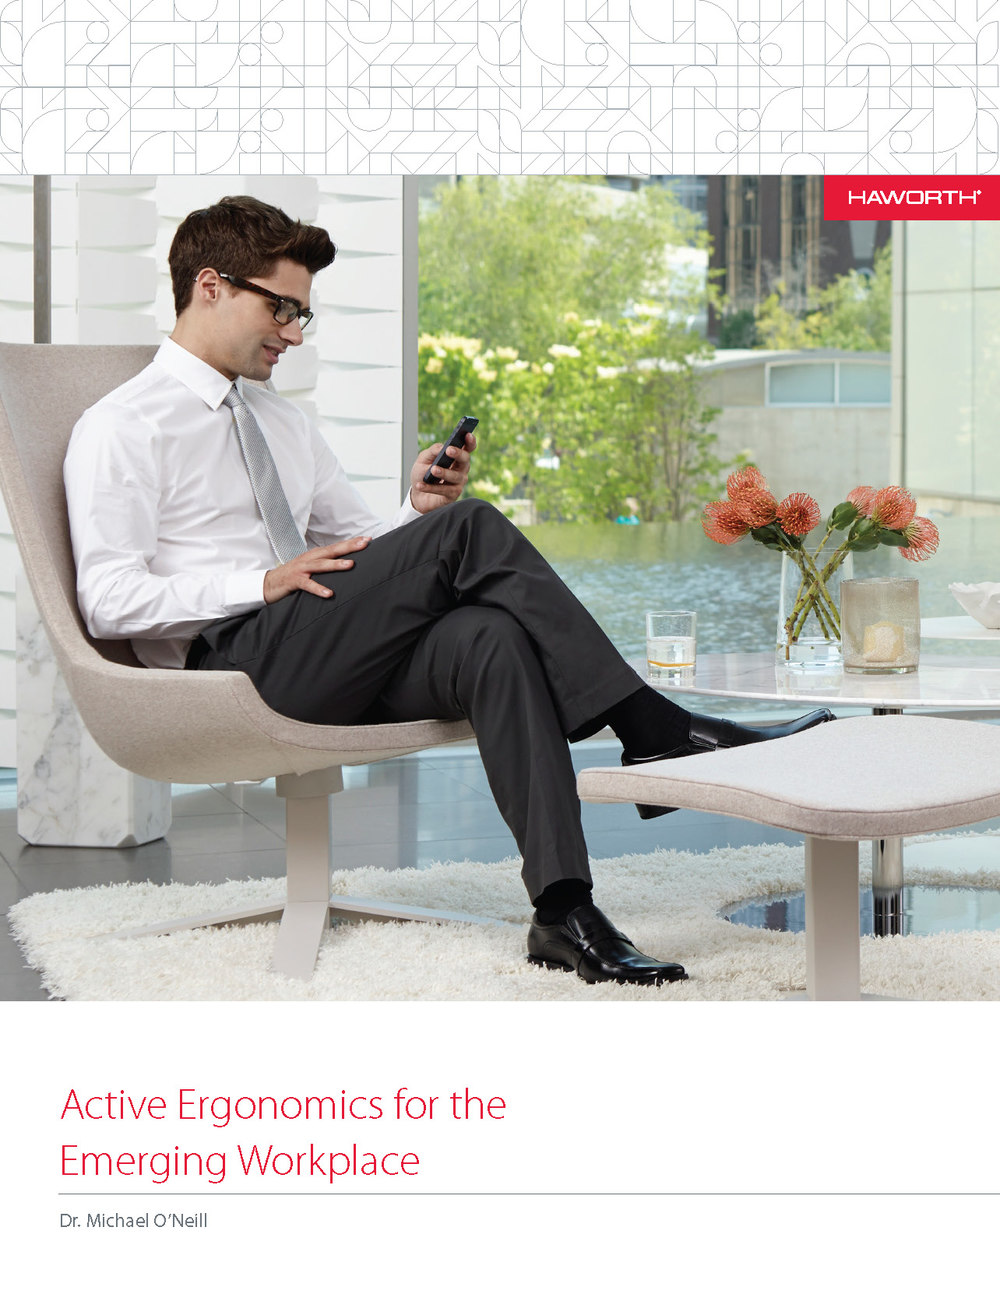 Active Ergonomics for the Emerging Workplace: courtesy of Haworth